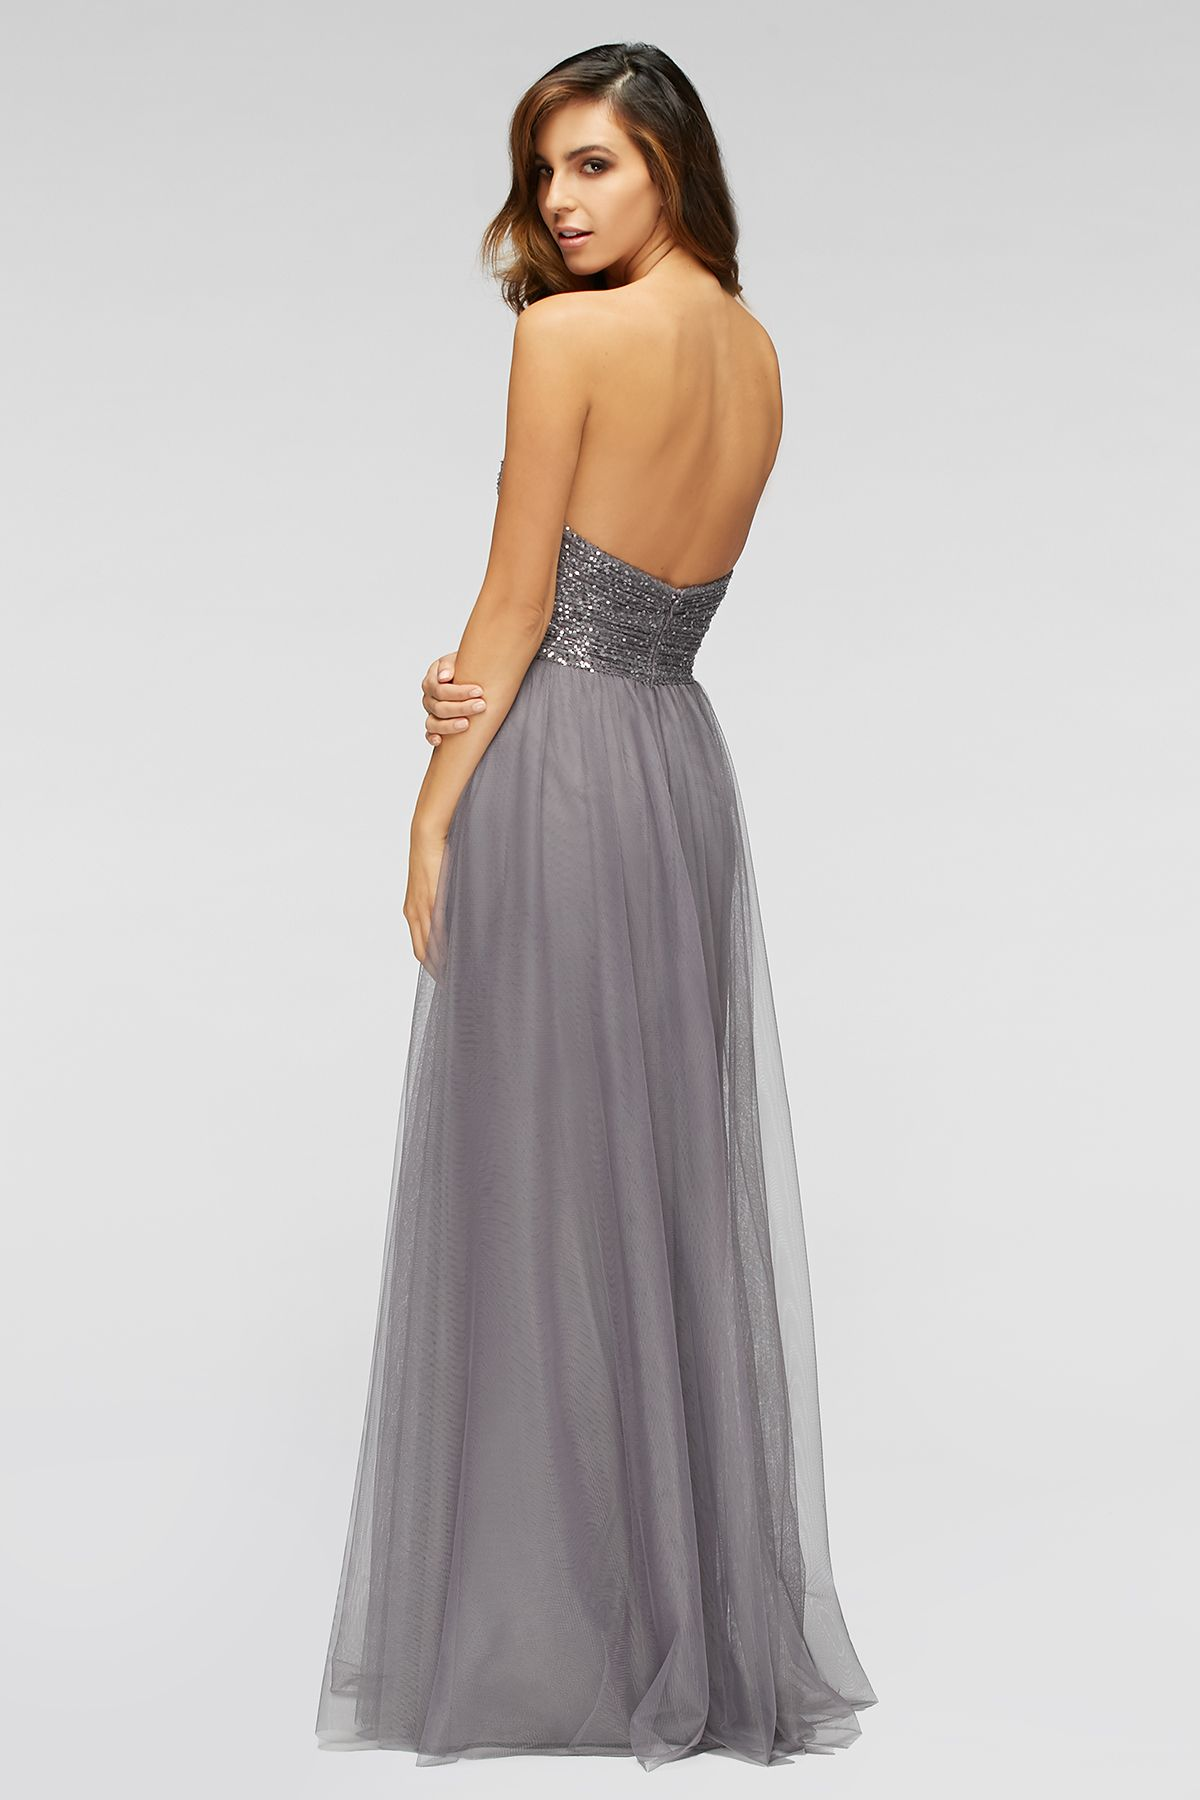 Watterswtoo bridesmaids dress 1313 in rockport the dress watterswtoo bridesmaids dress 1313 in rockport ombrellifo Gallery